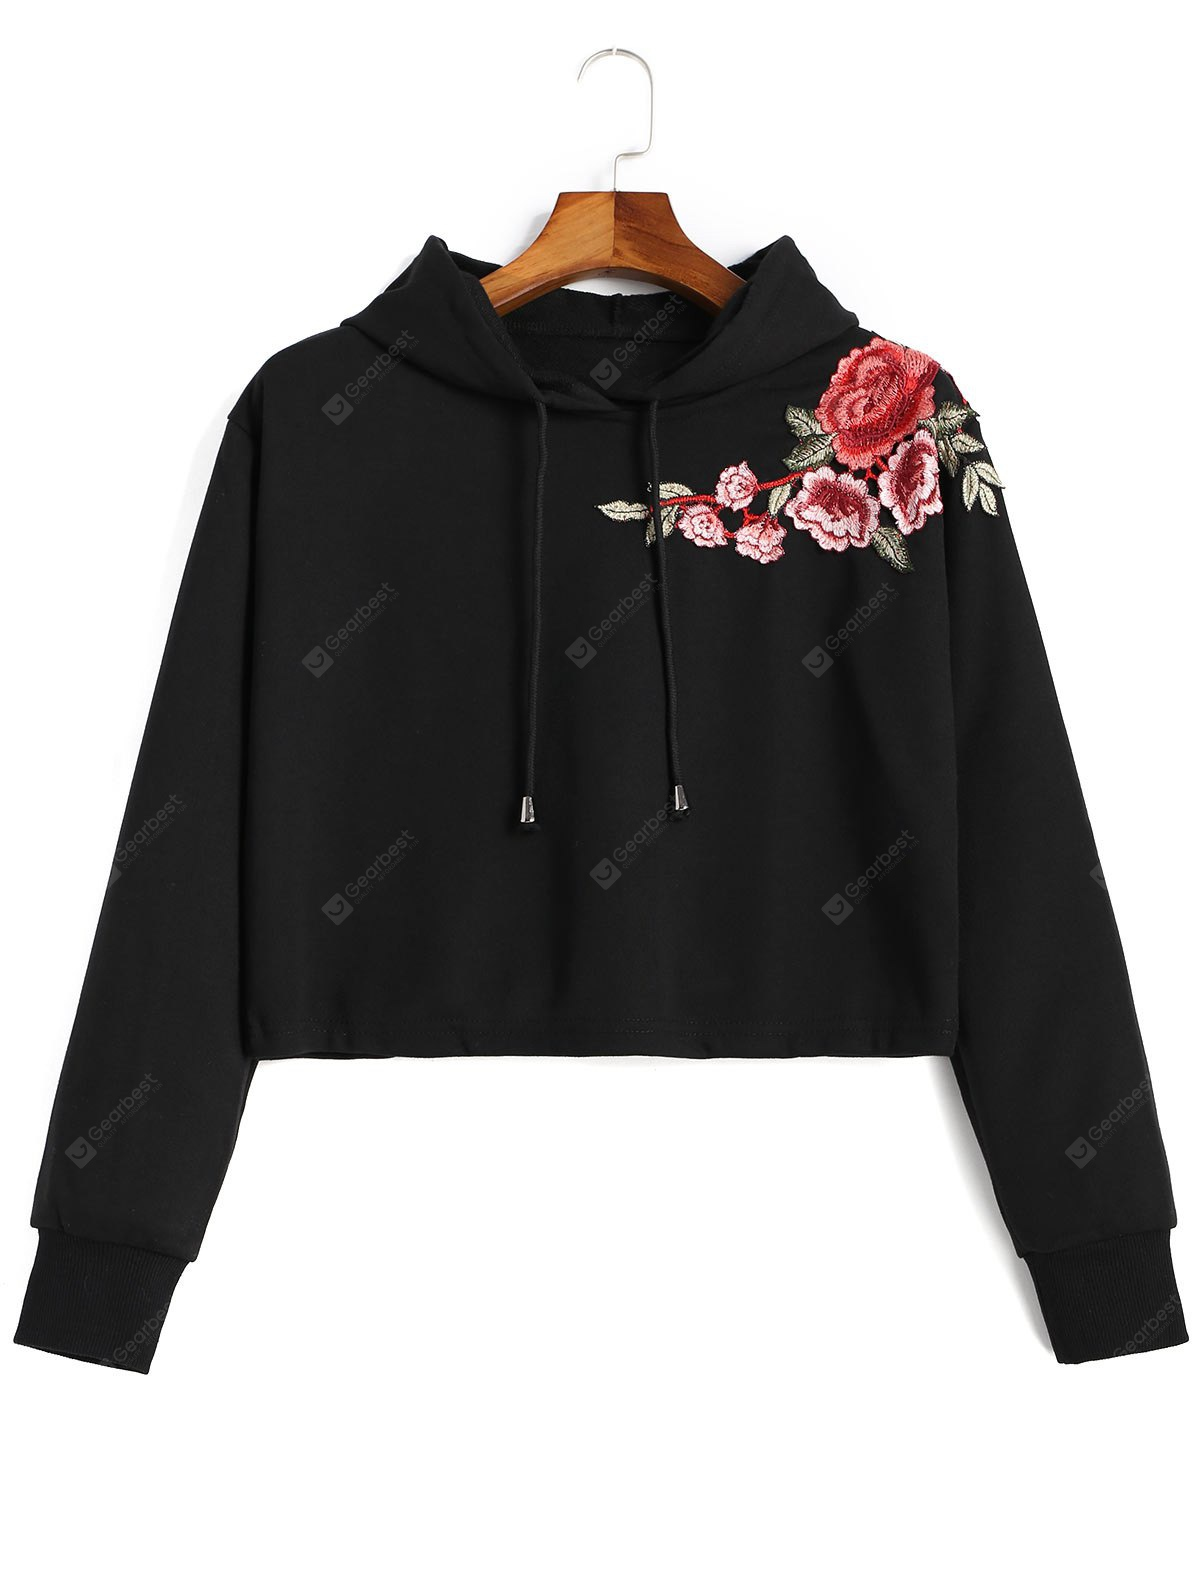 Applique Cropped Hoodie